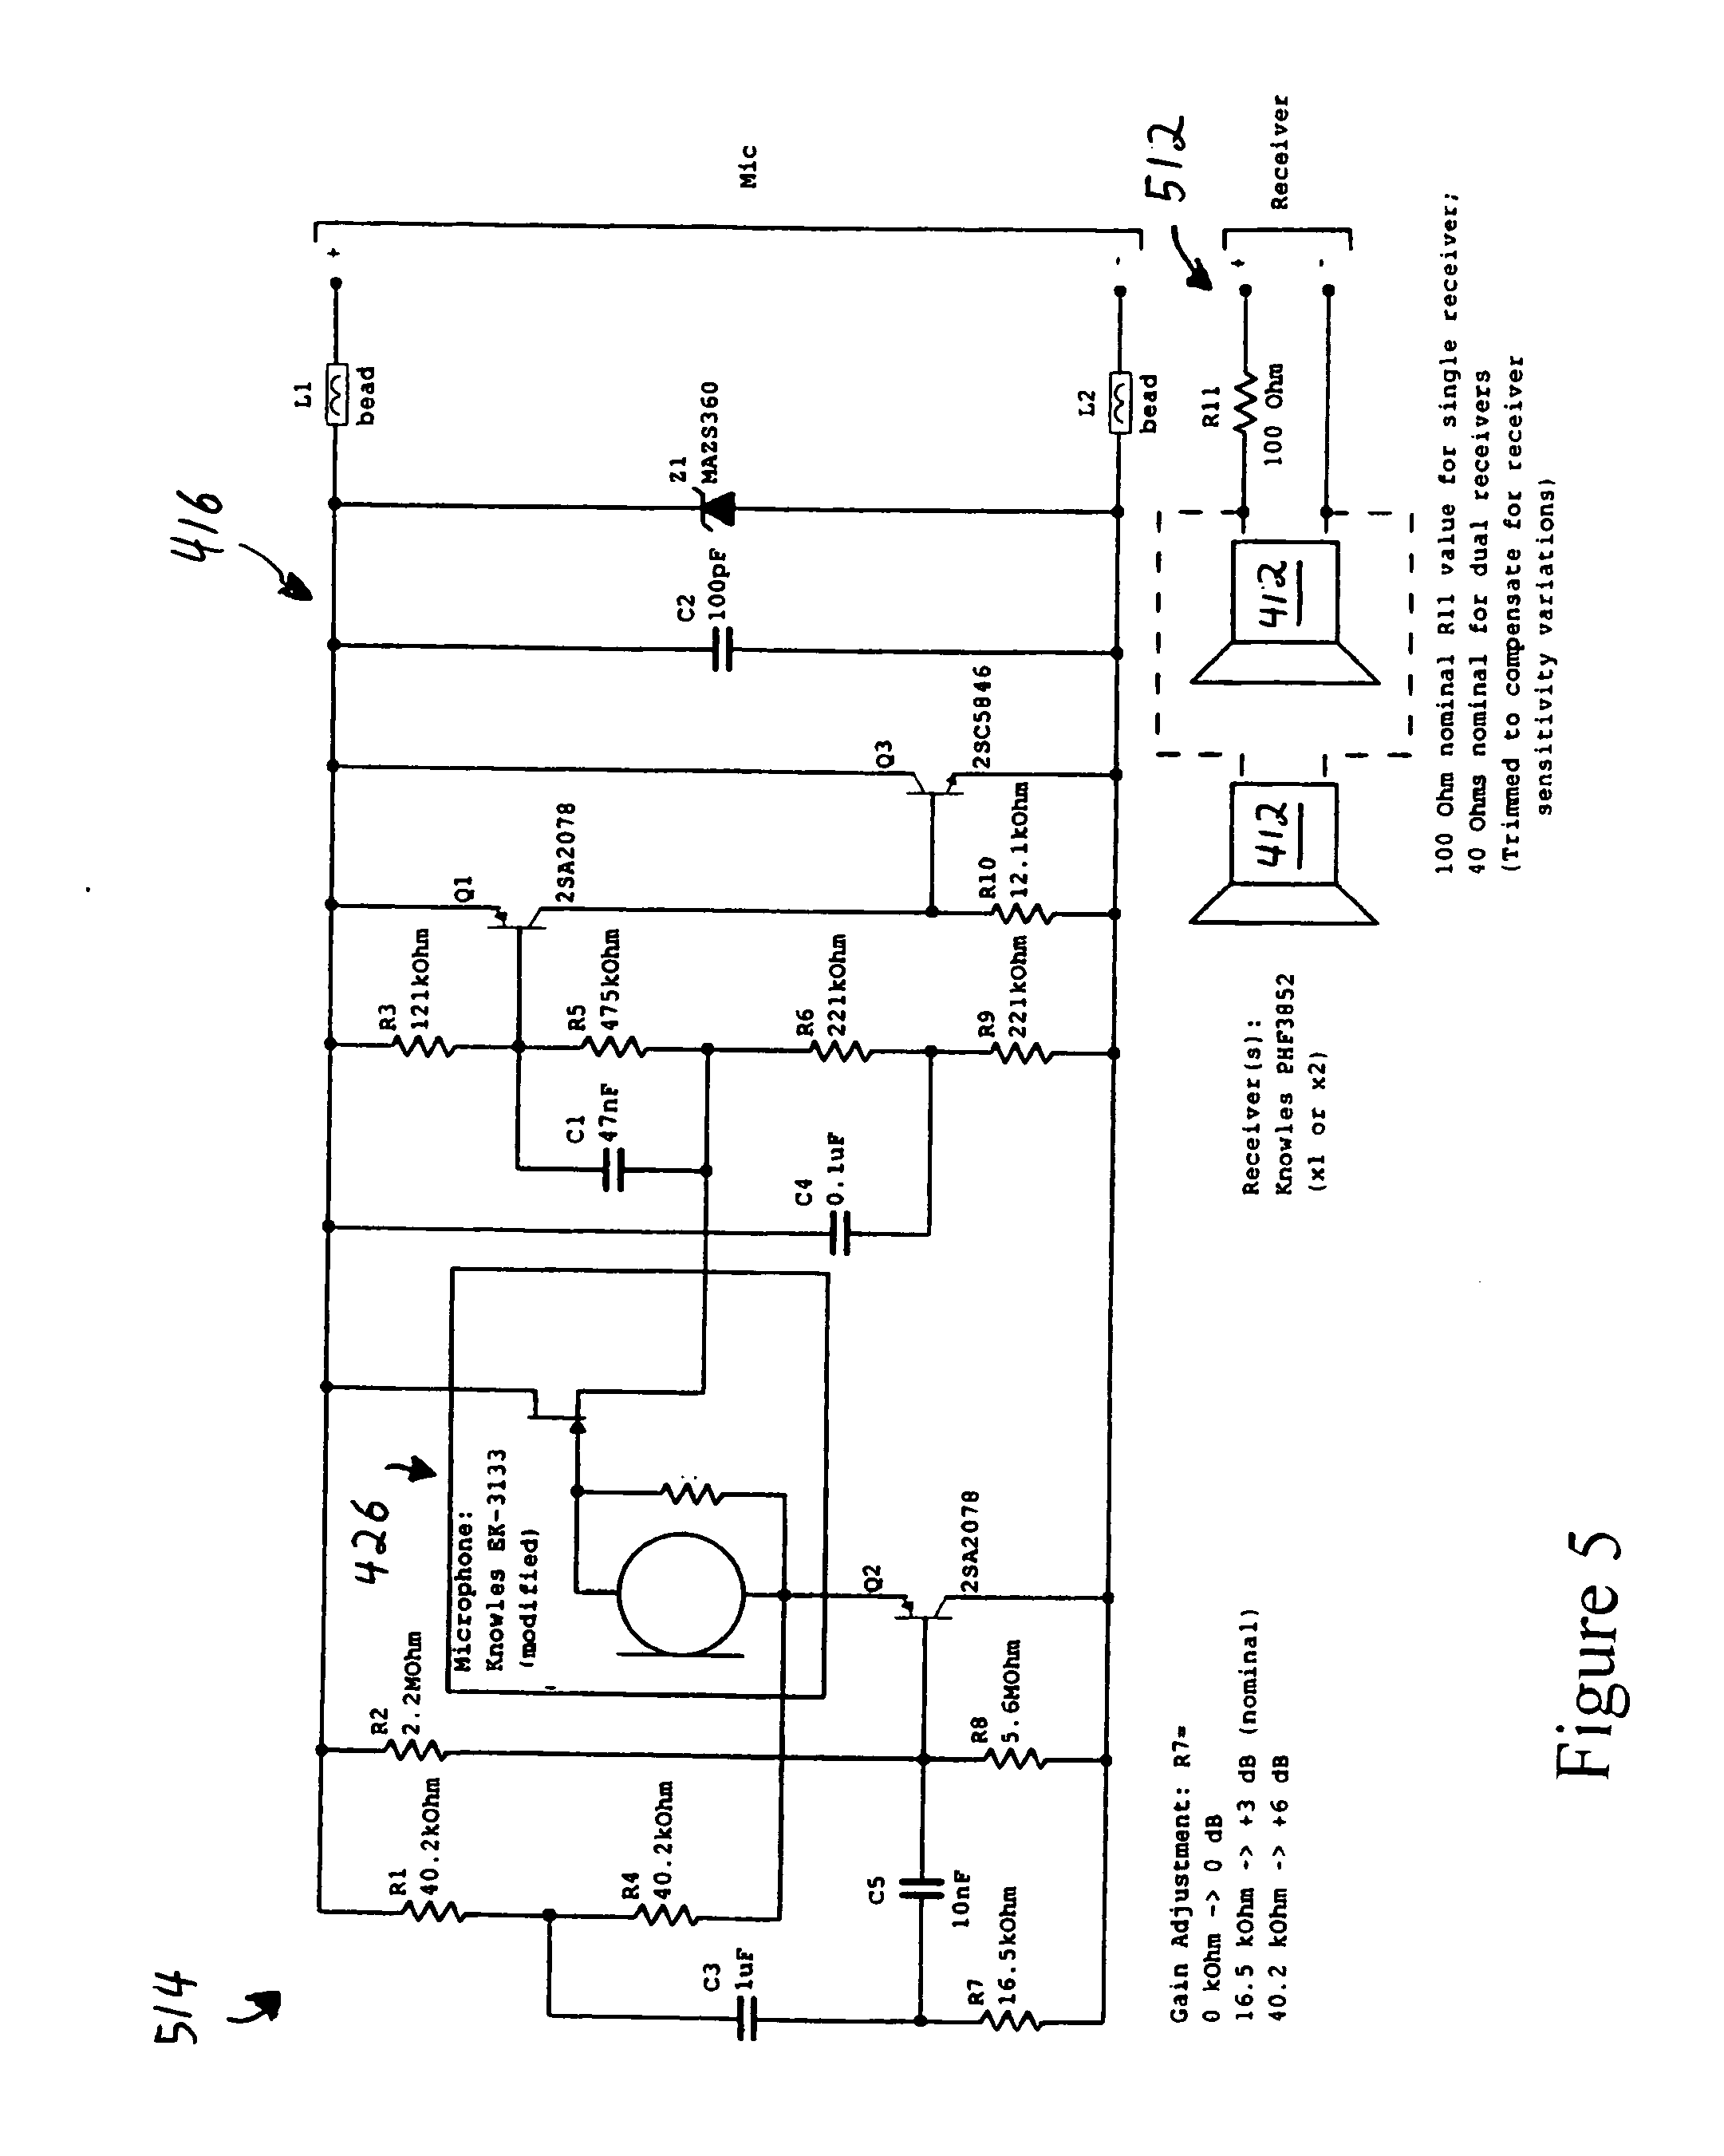 patent us20060182287 - audio monitoring system